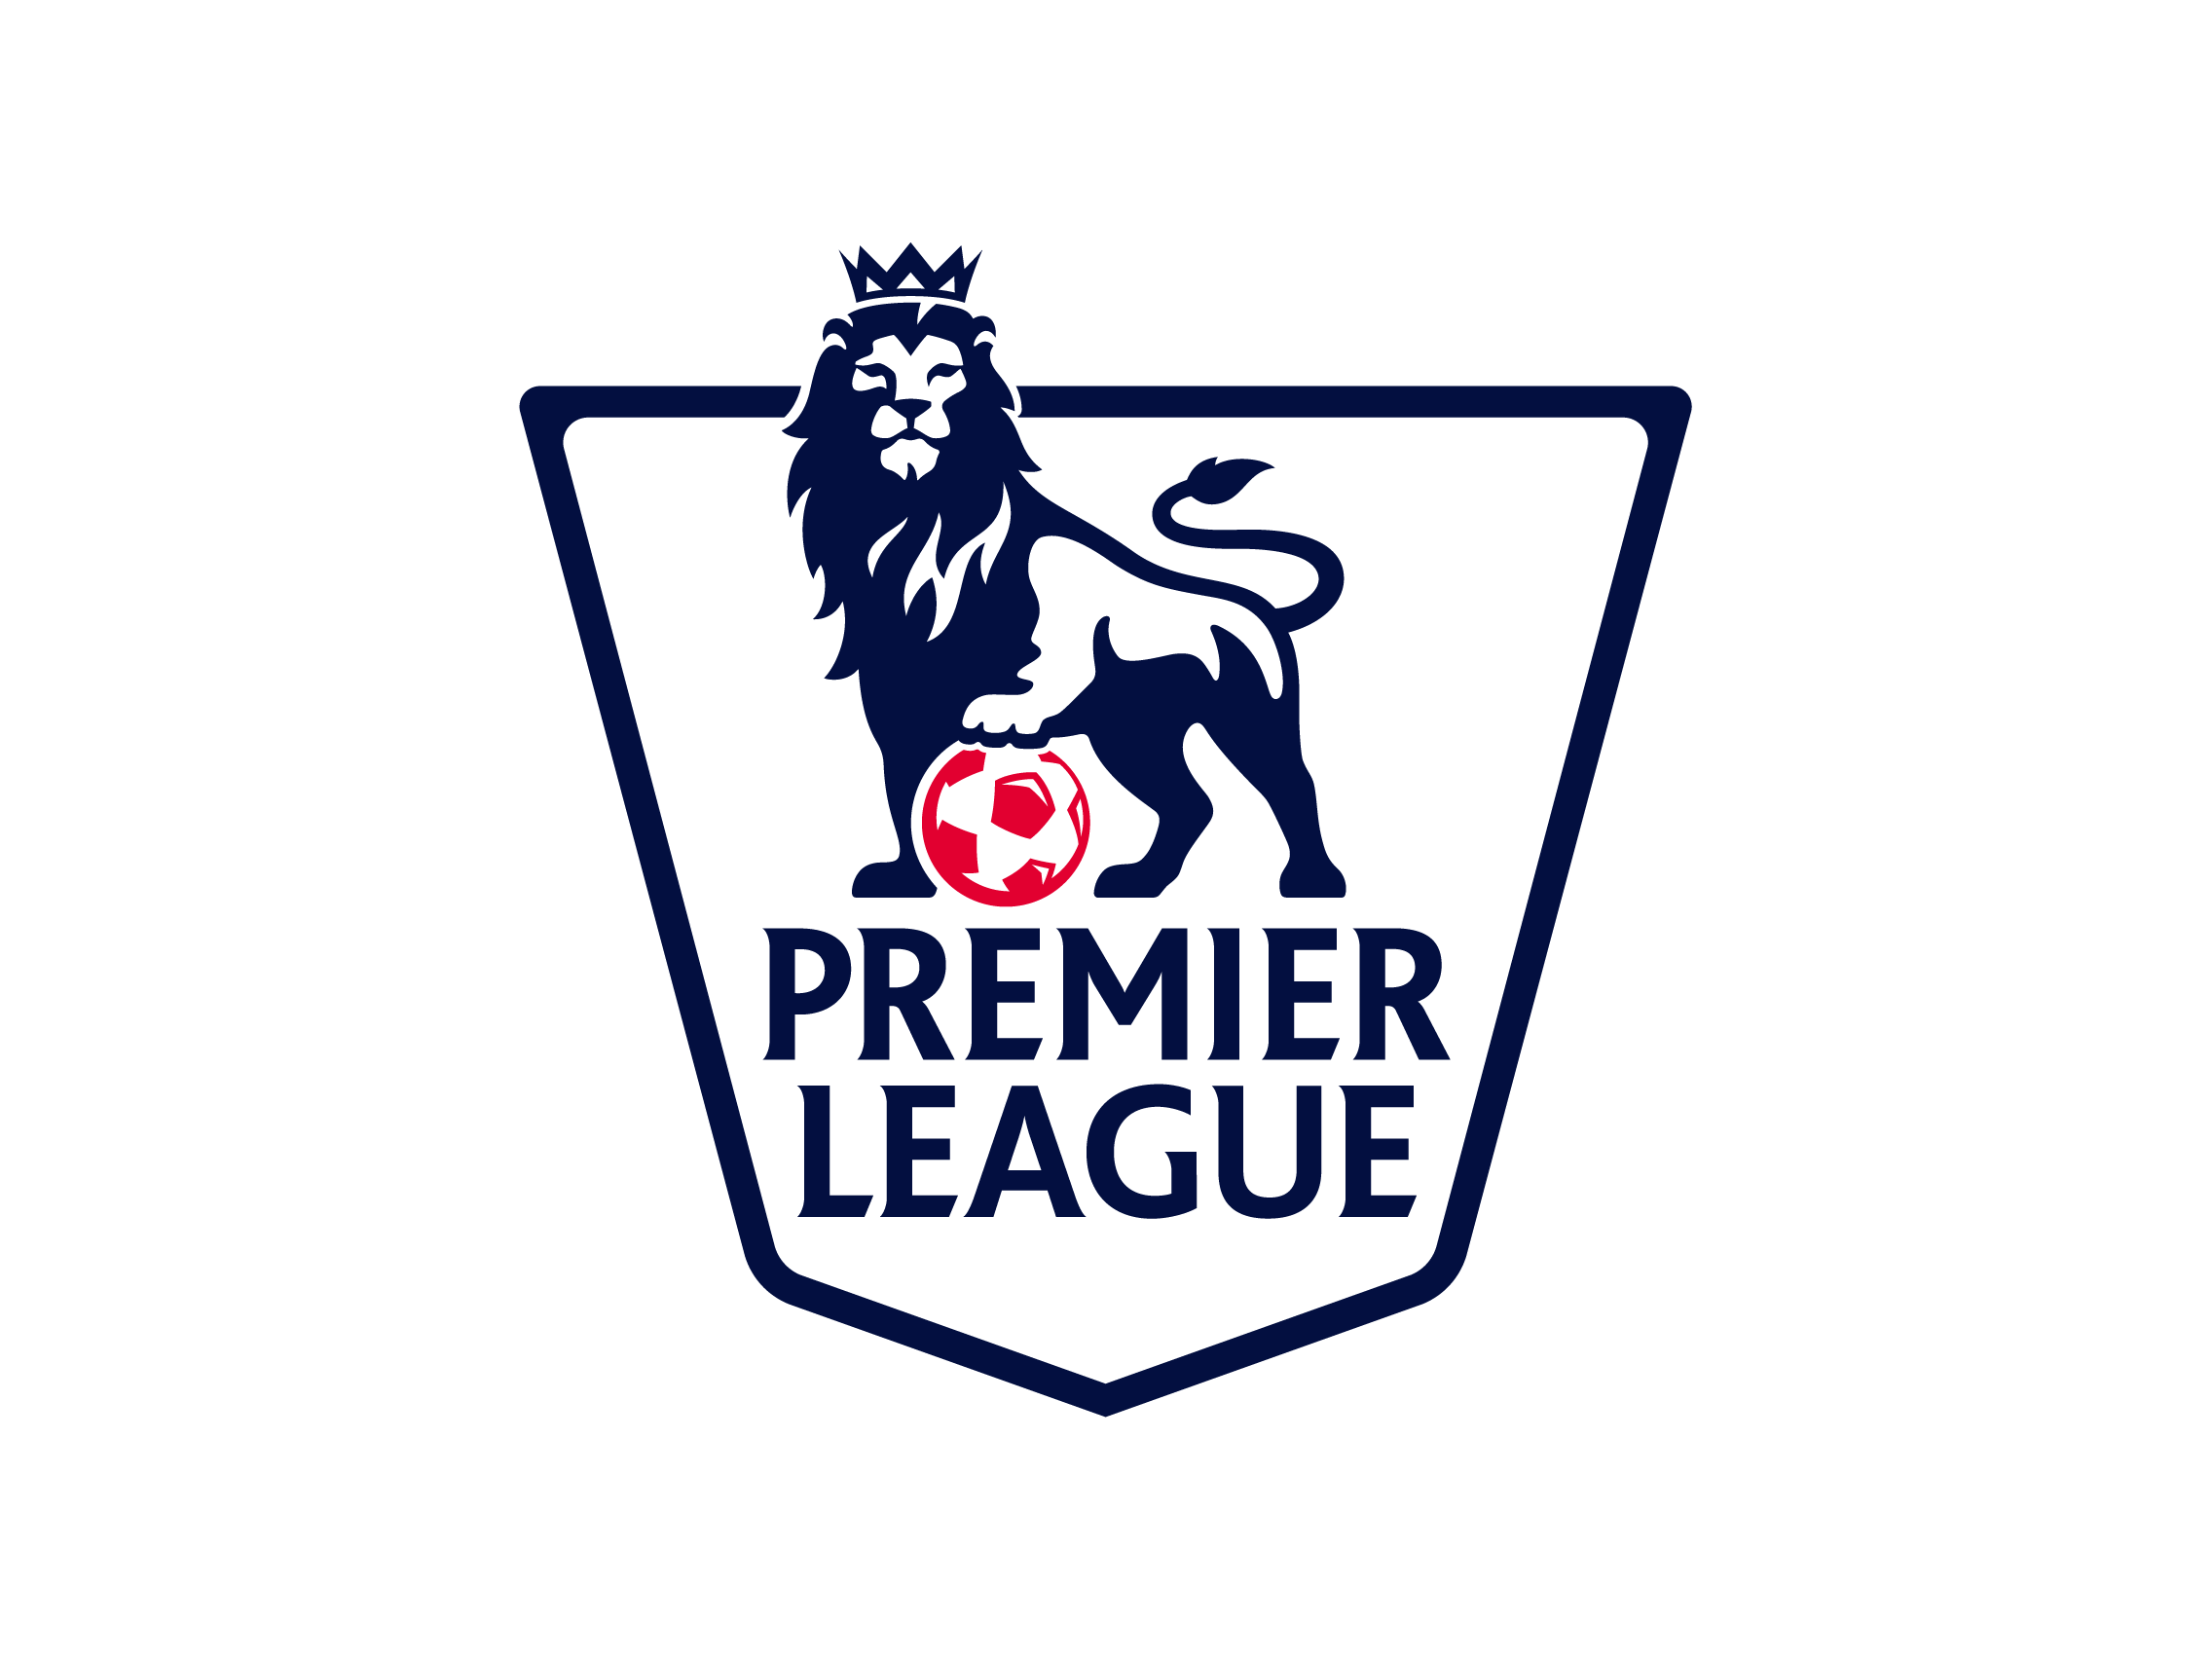 ePremier League Liverpool ePL stars different paths to final Donovan Hunt and Dariosh Krowner recall their contrasting journeys to todays ePremier League Final